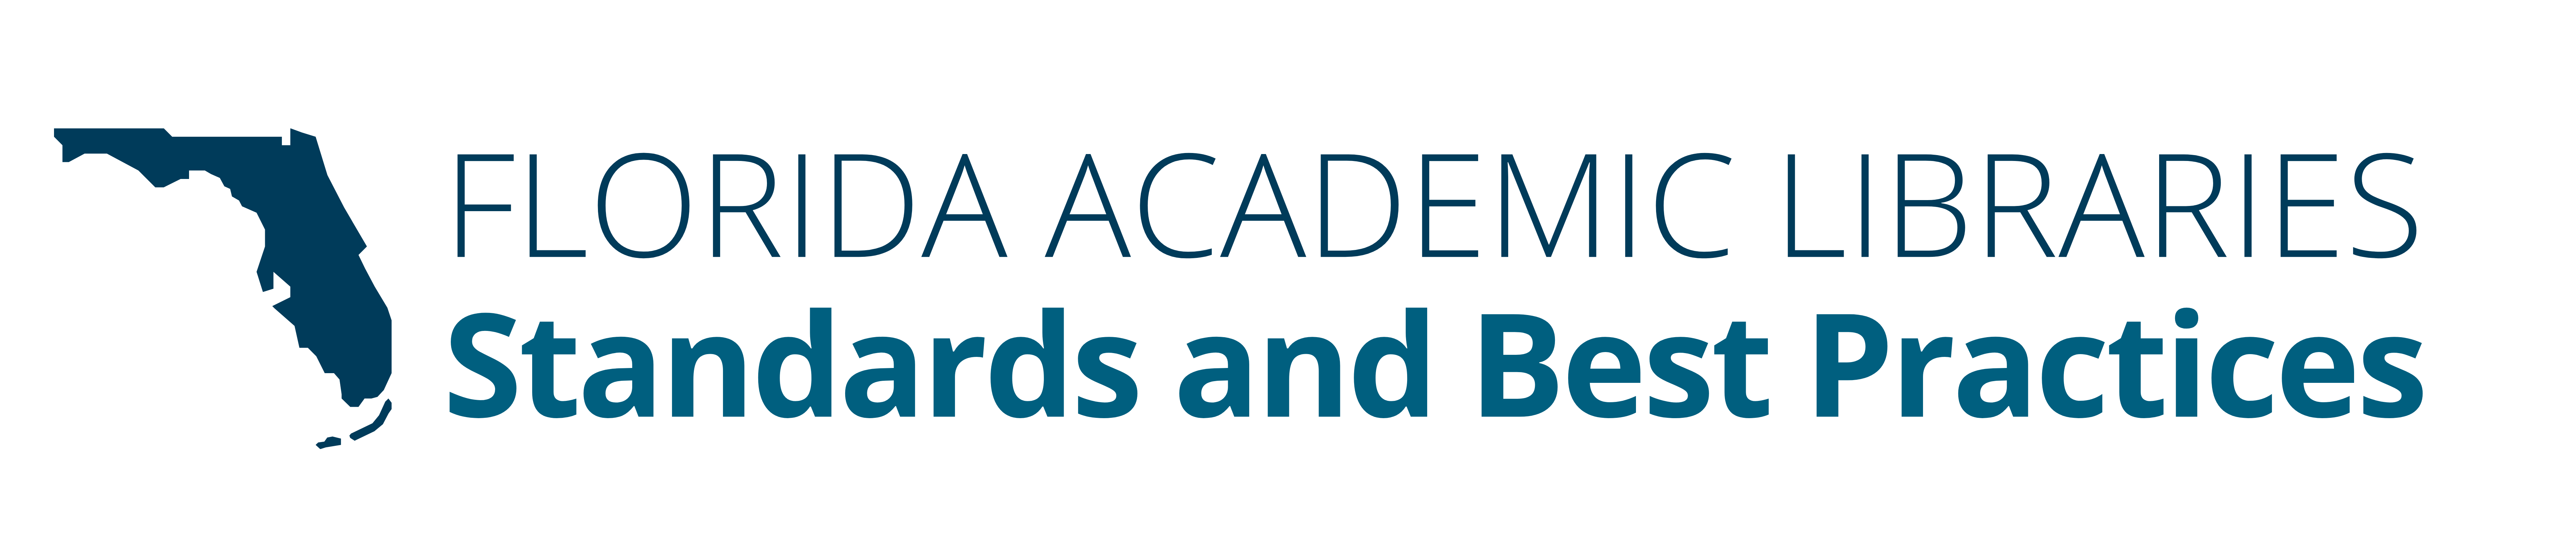 Standards and Best Practices for Florida Libraries Banner